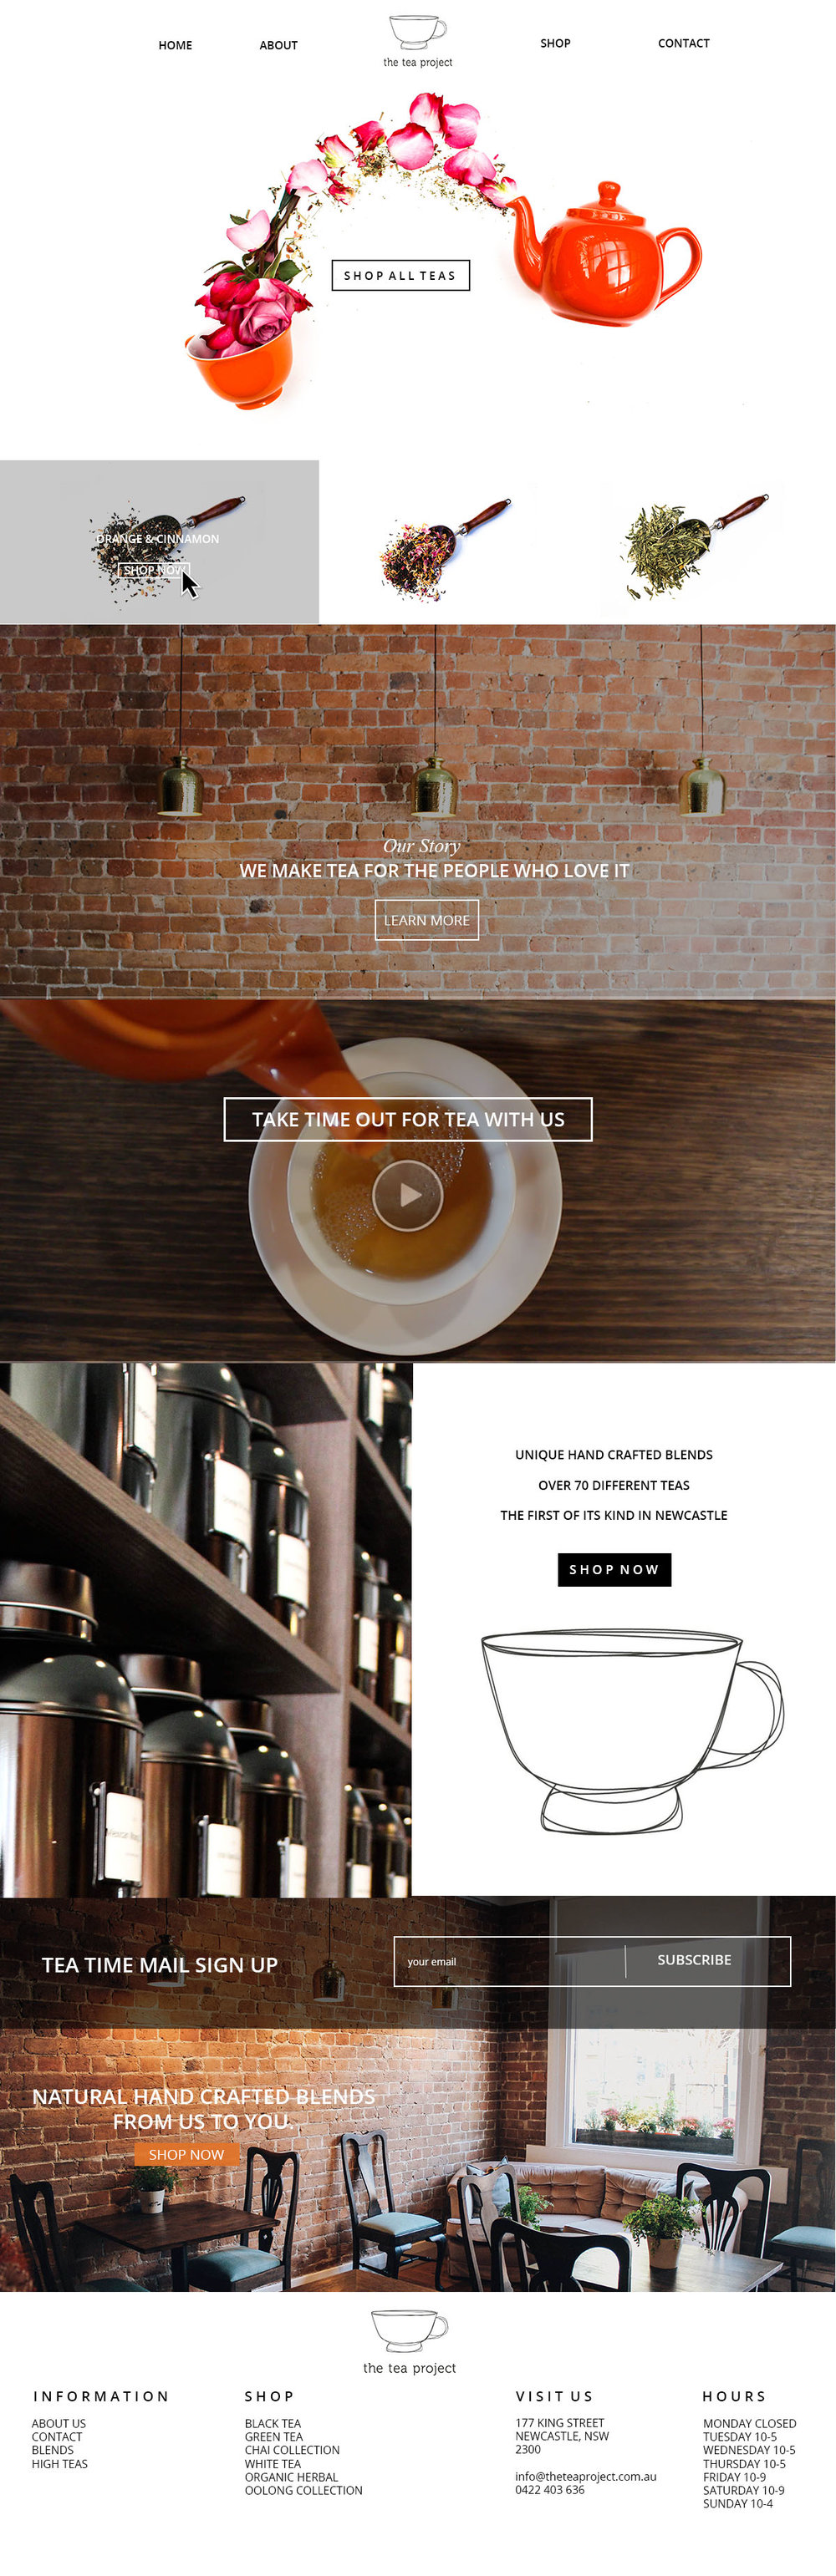 the-tea-project-home-page+(1)+copy.jpg